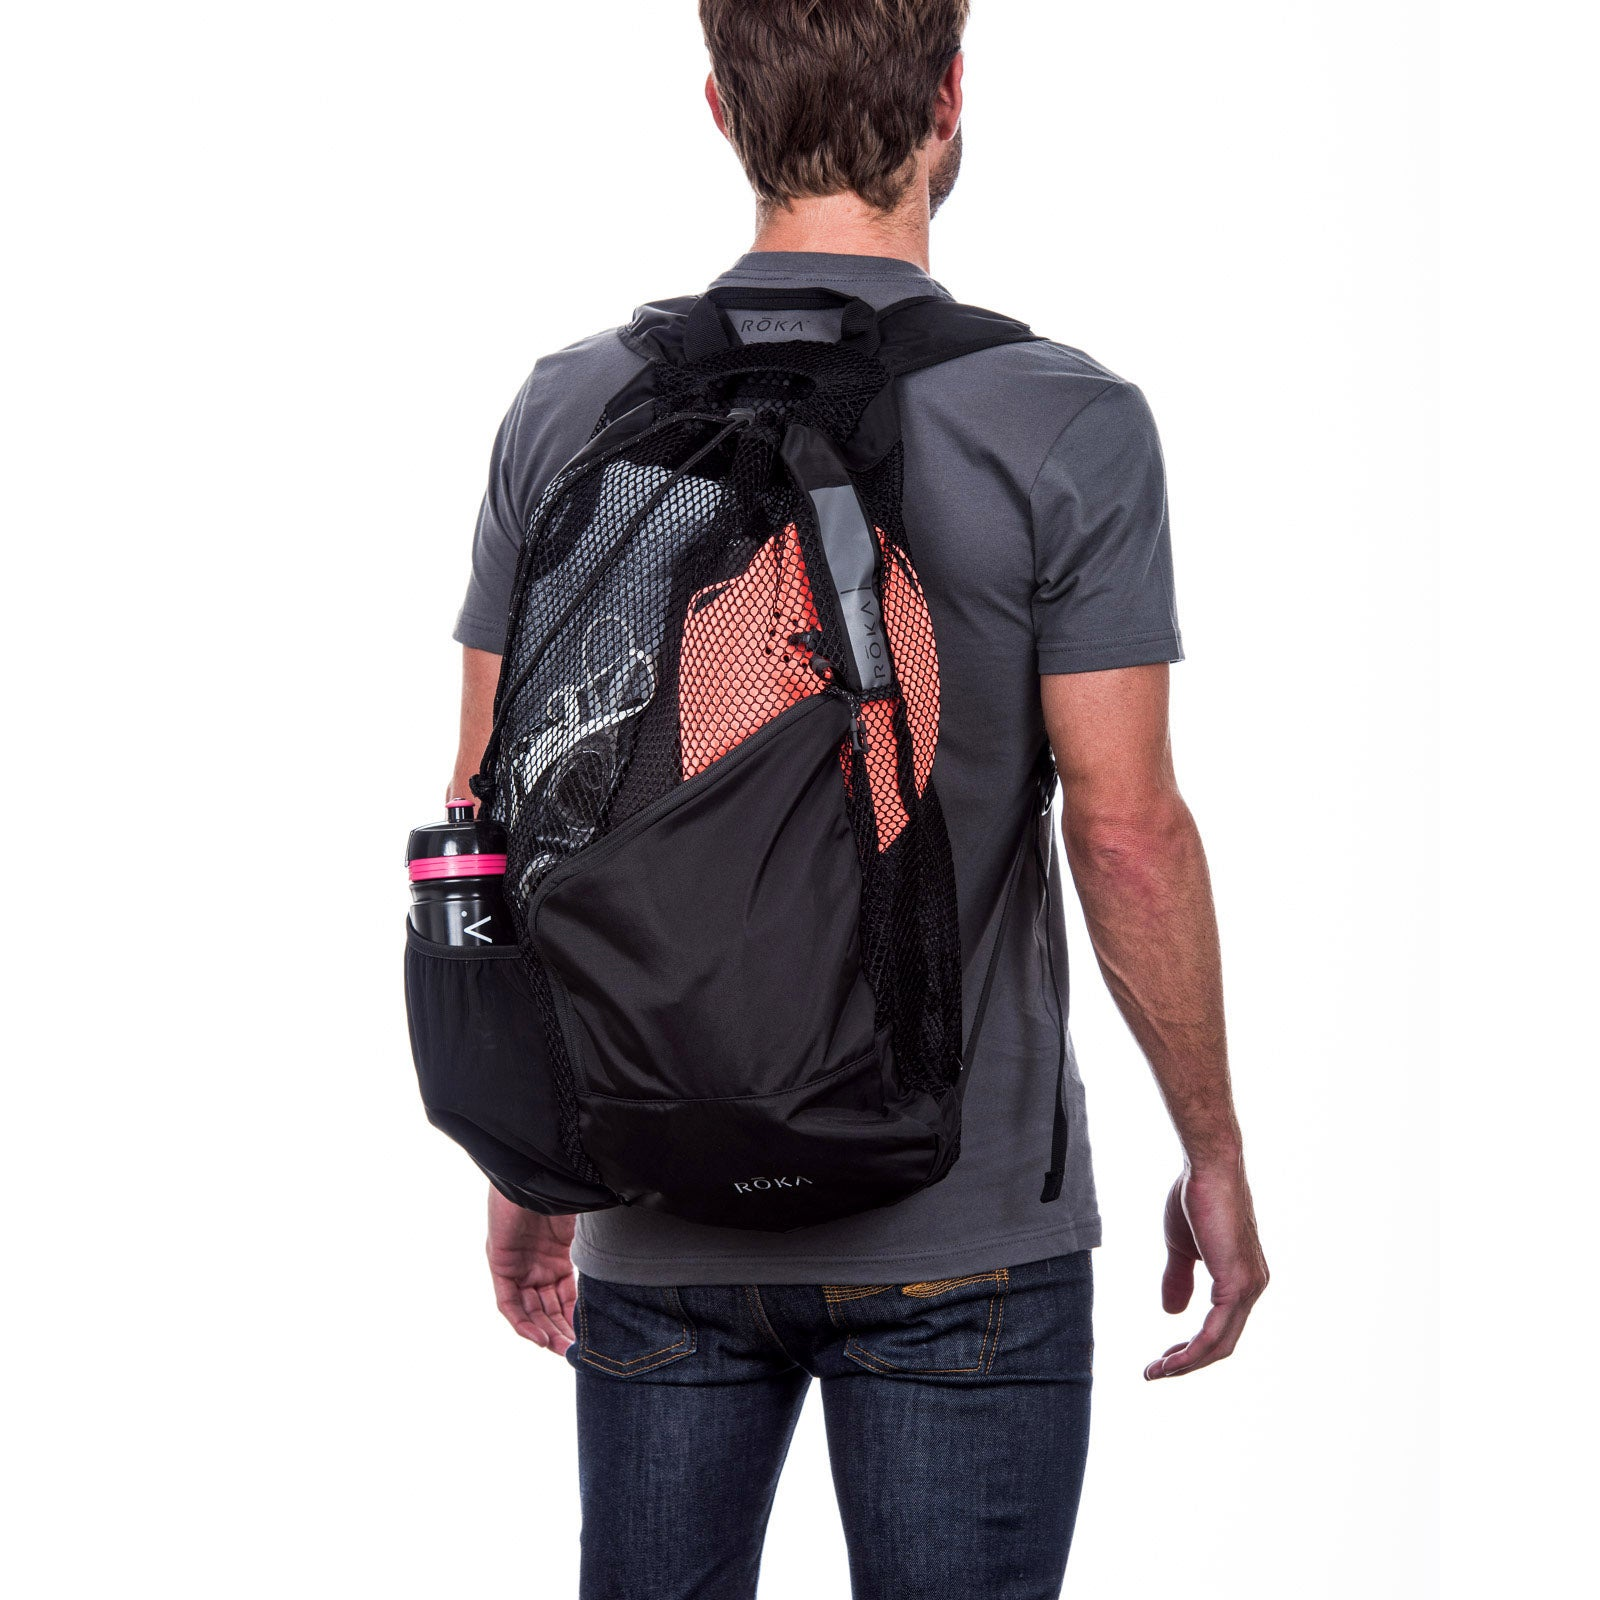 36043c66a8a0 Pro Vent Quickdraw Mesh Backpack (35 Liter) - Drawstring Bag